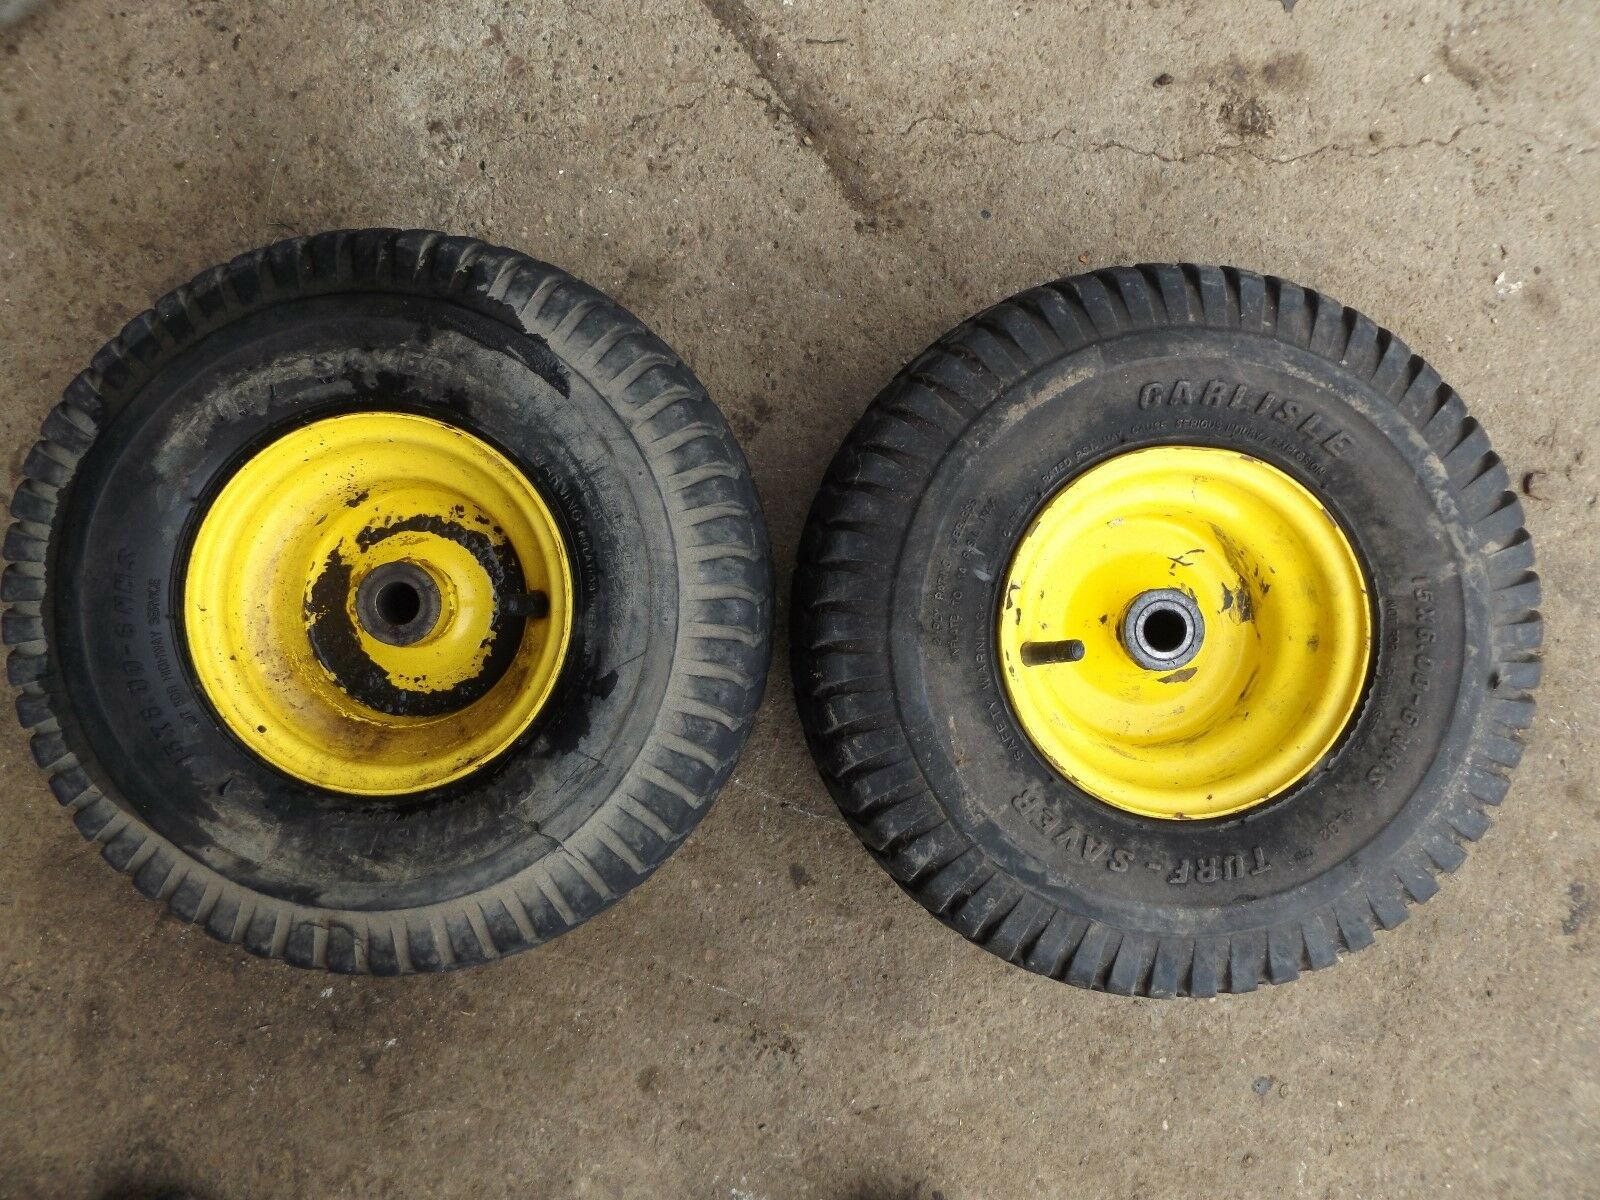 John Deere Front Rims and Tires 15x6.00-6